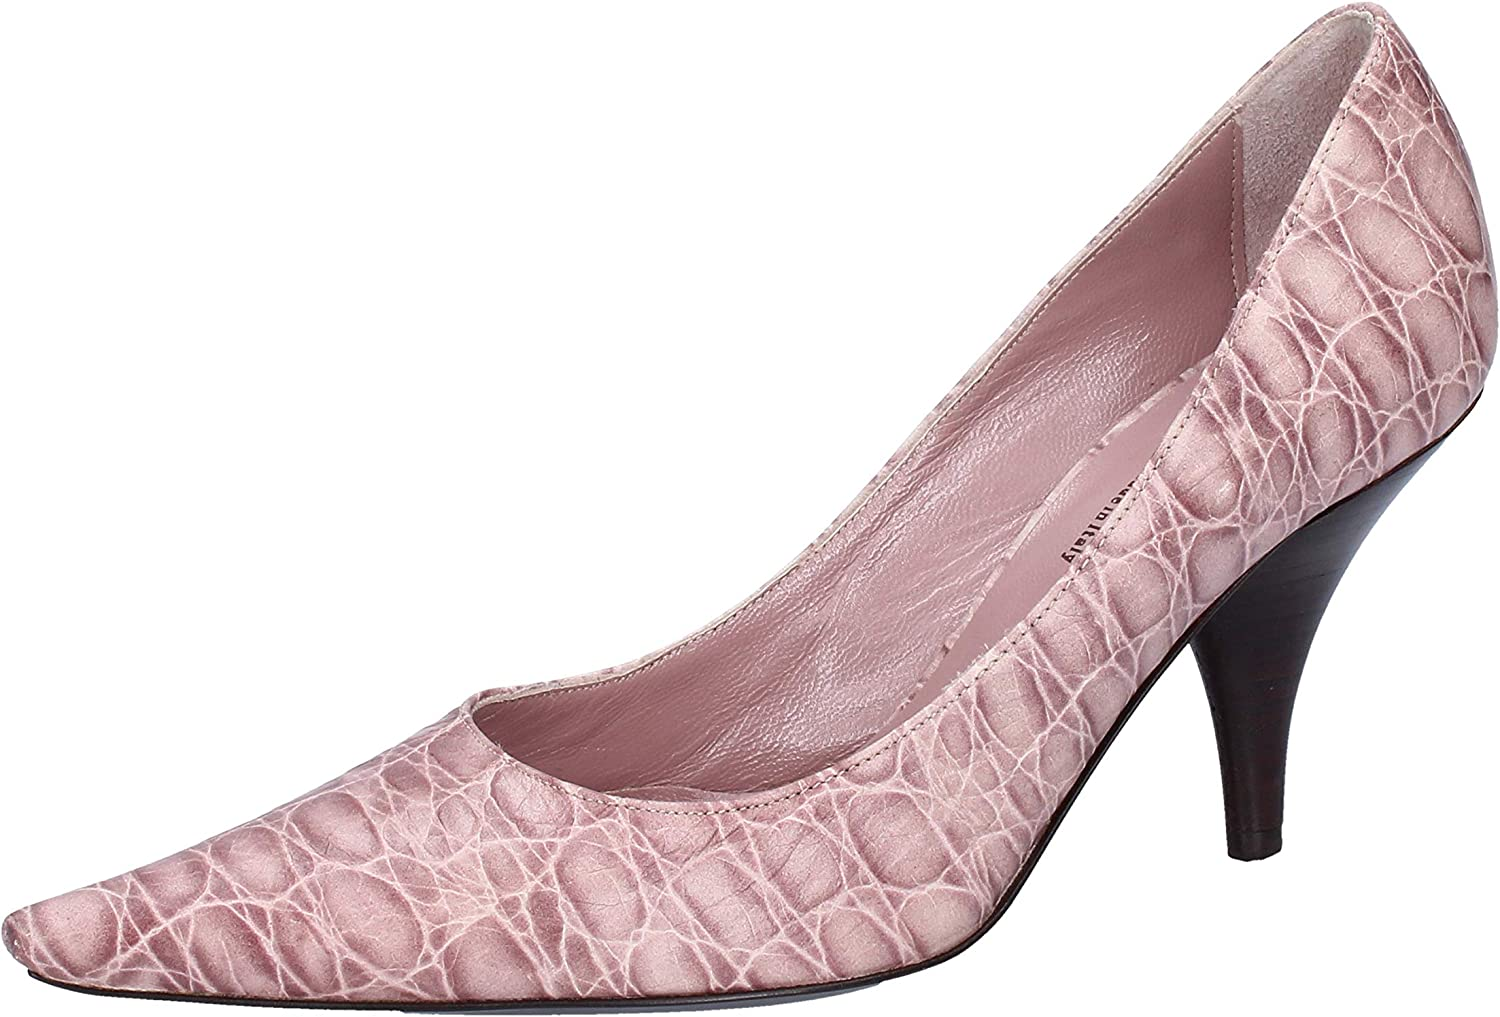 LOITA Pumps-shoes Womens Leather Pink